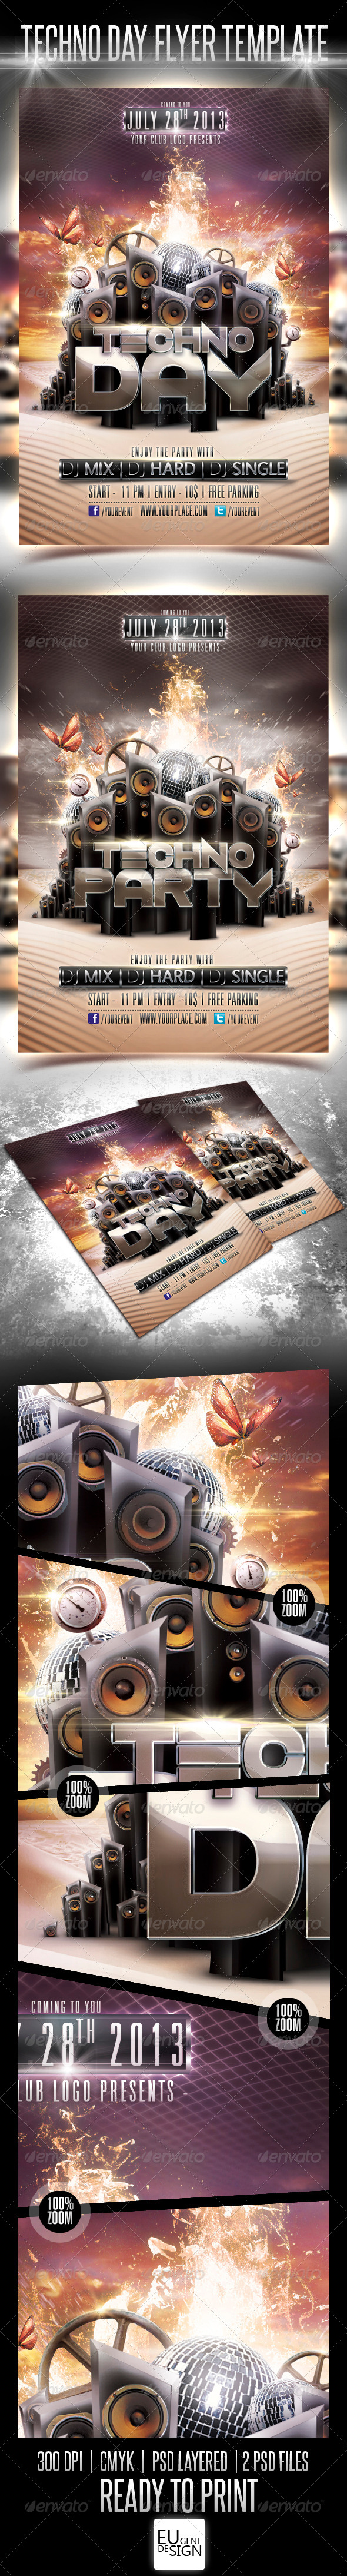 Techno Day Flyer Template - Clubs & Parties Events